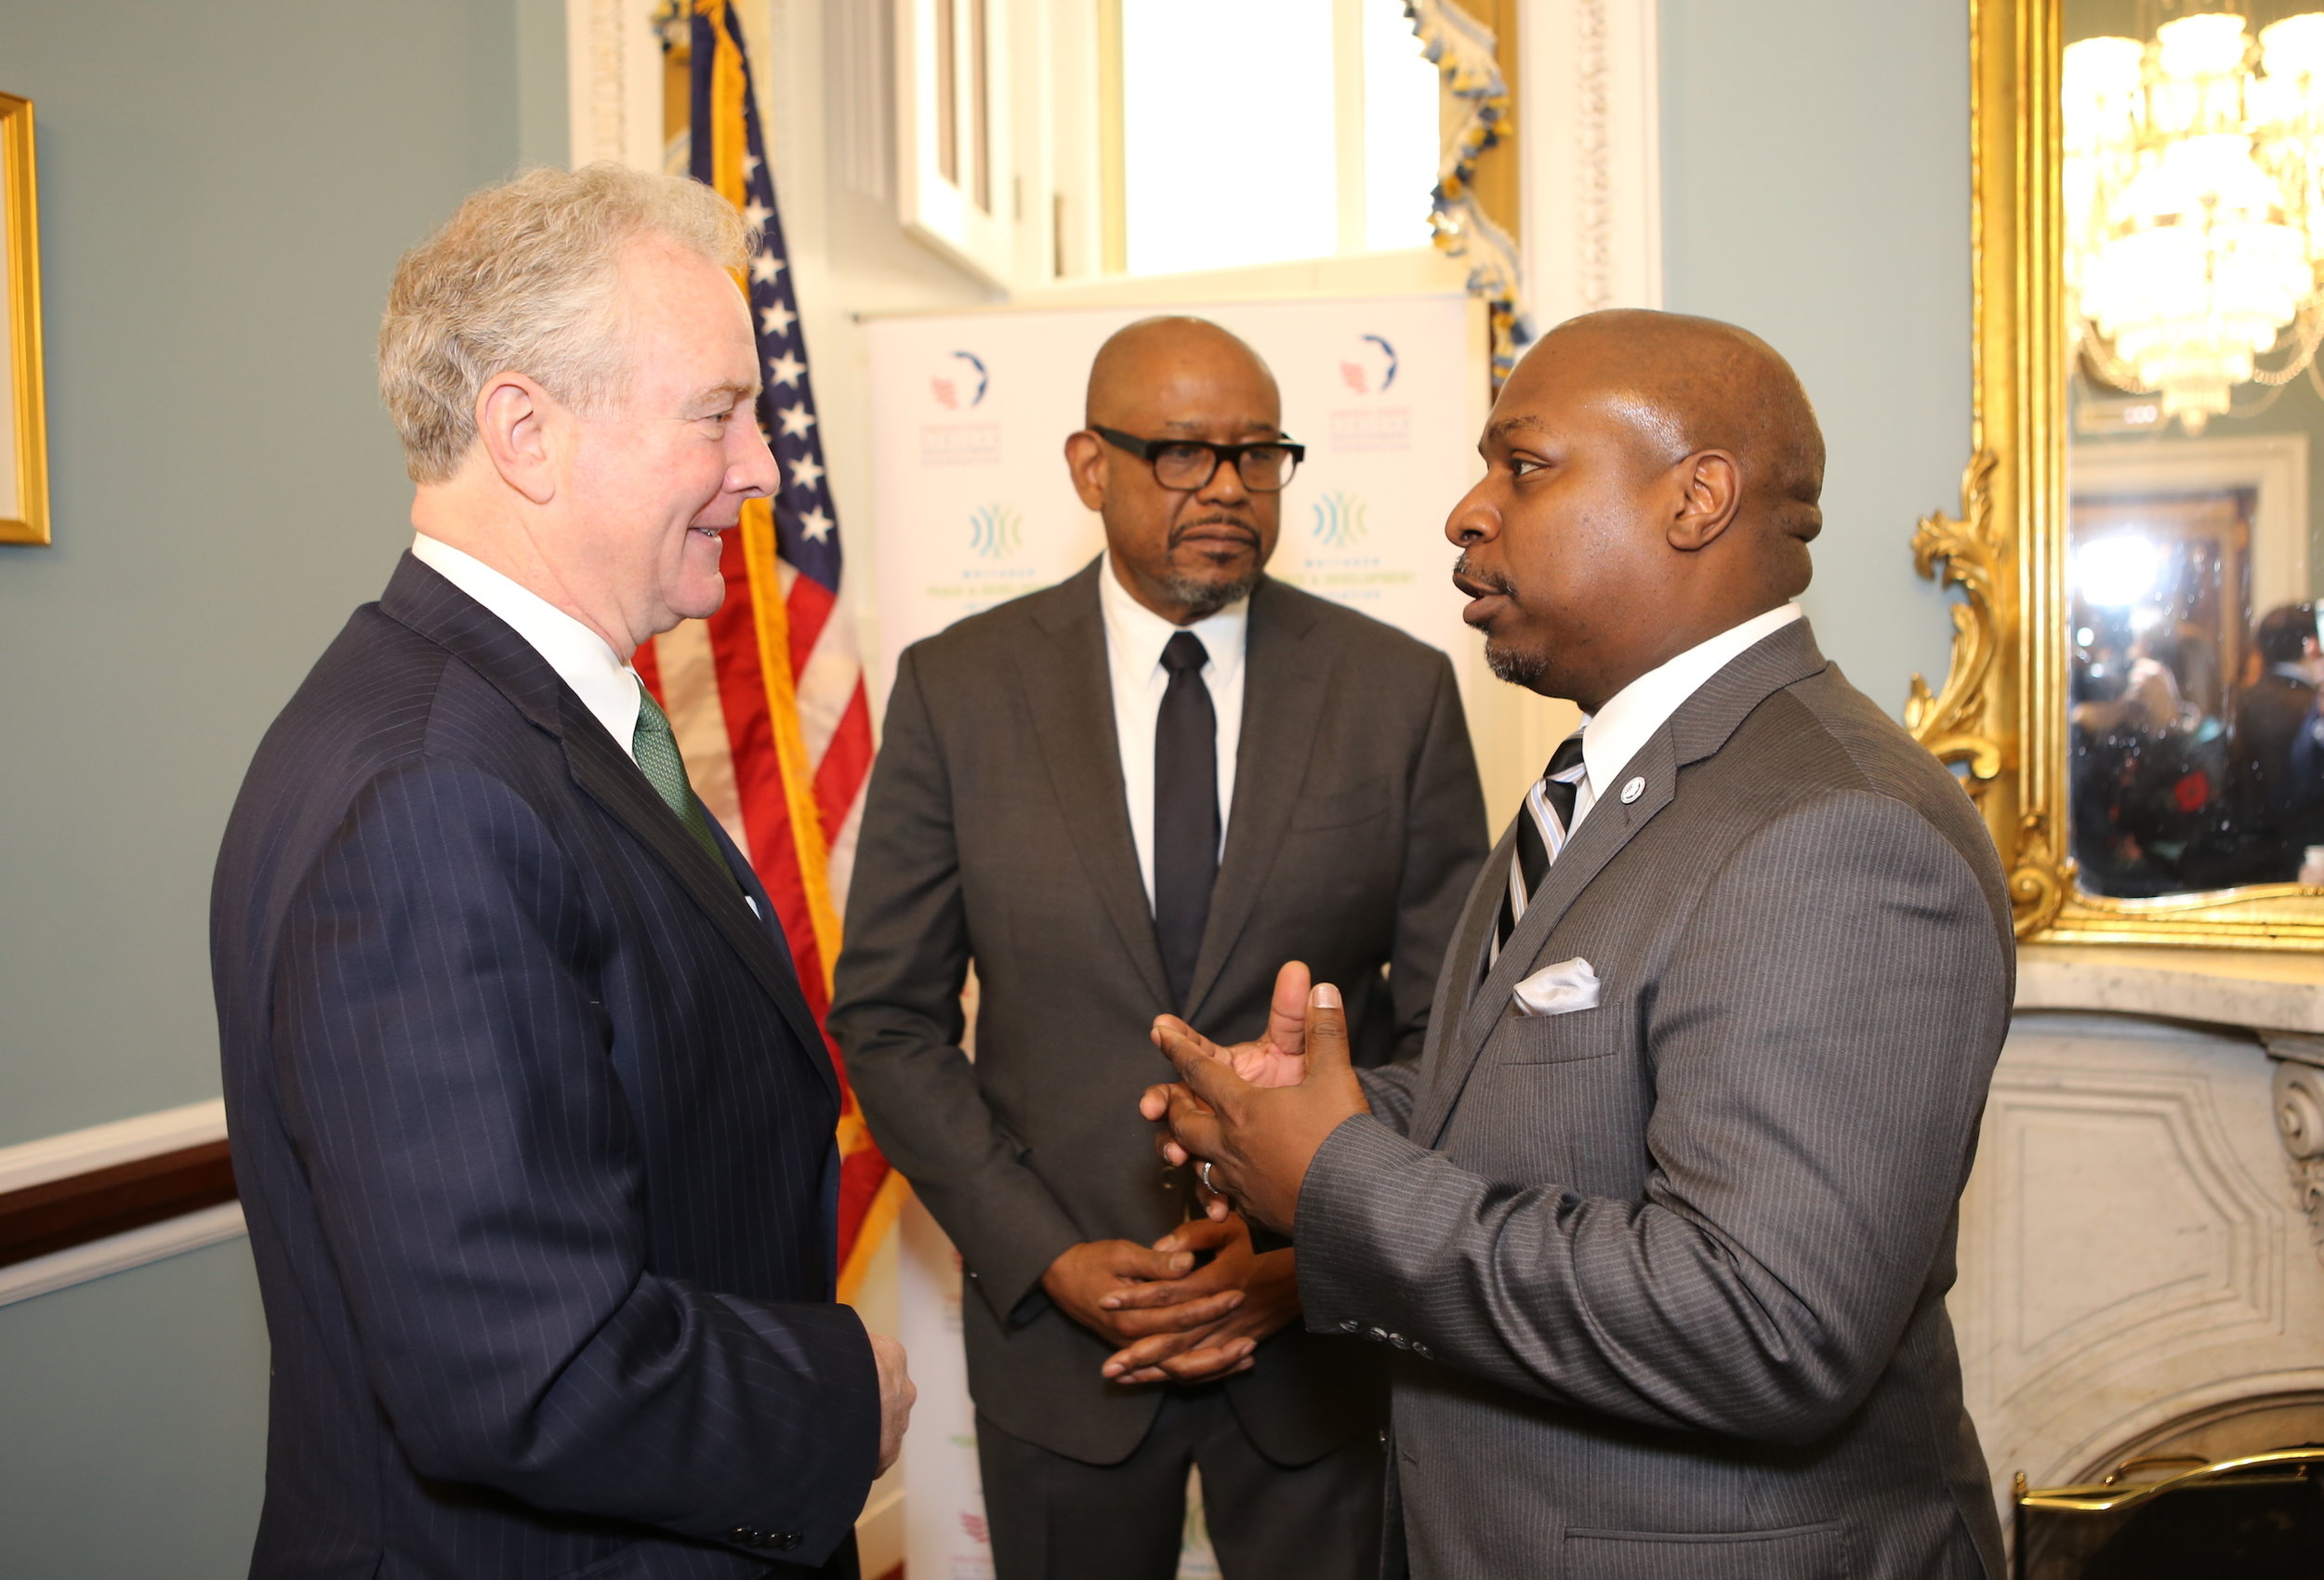 Senator Chris Van Hollen (left) was one of several members of Congress who joined WPDI Founder/CEO Forest Whitaker and USADF President/CEO C.D. Glin for the partnership announcement.